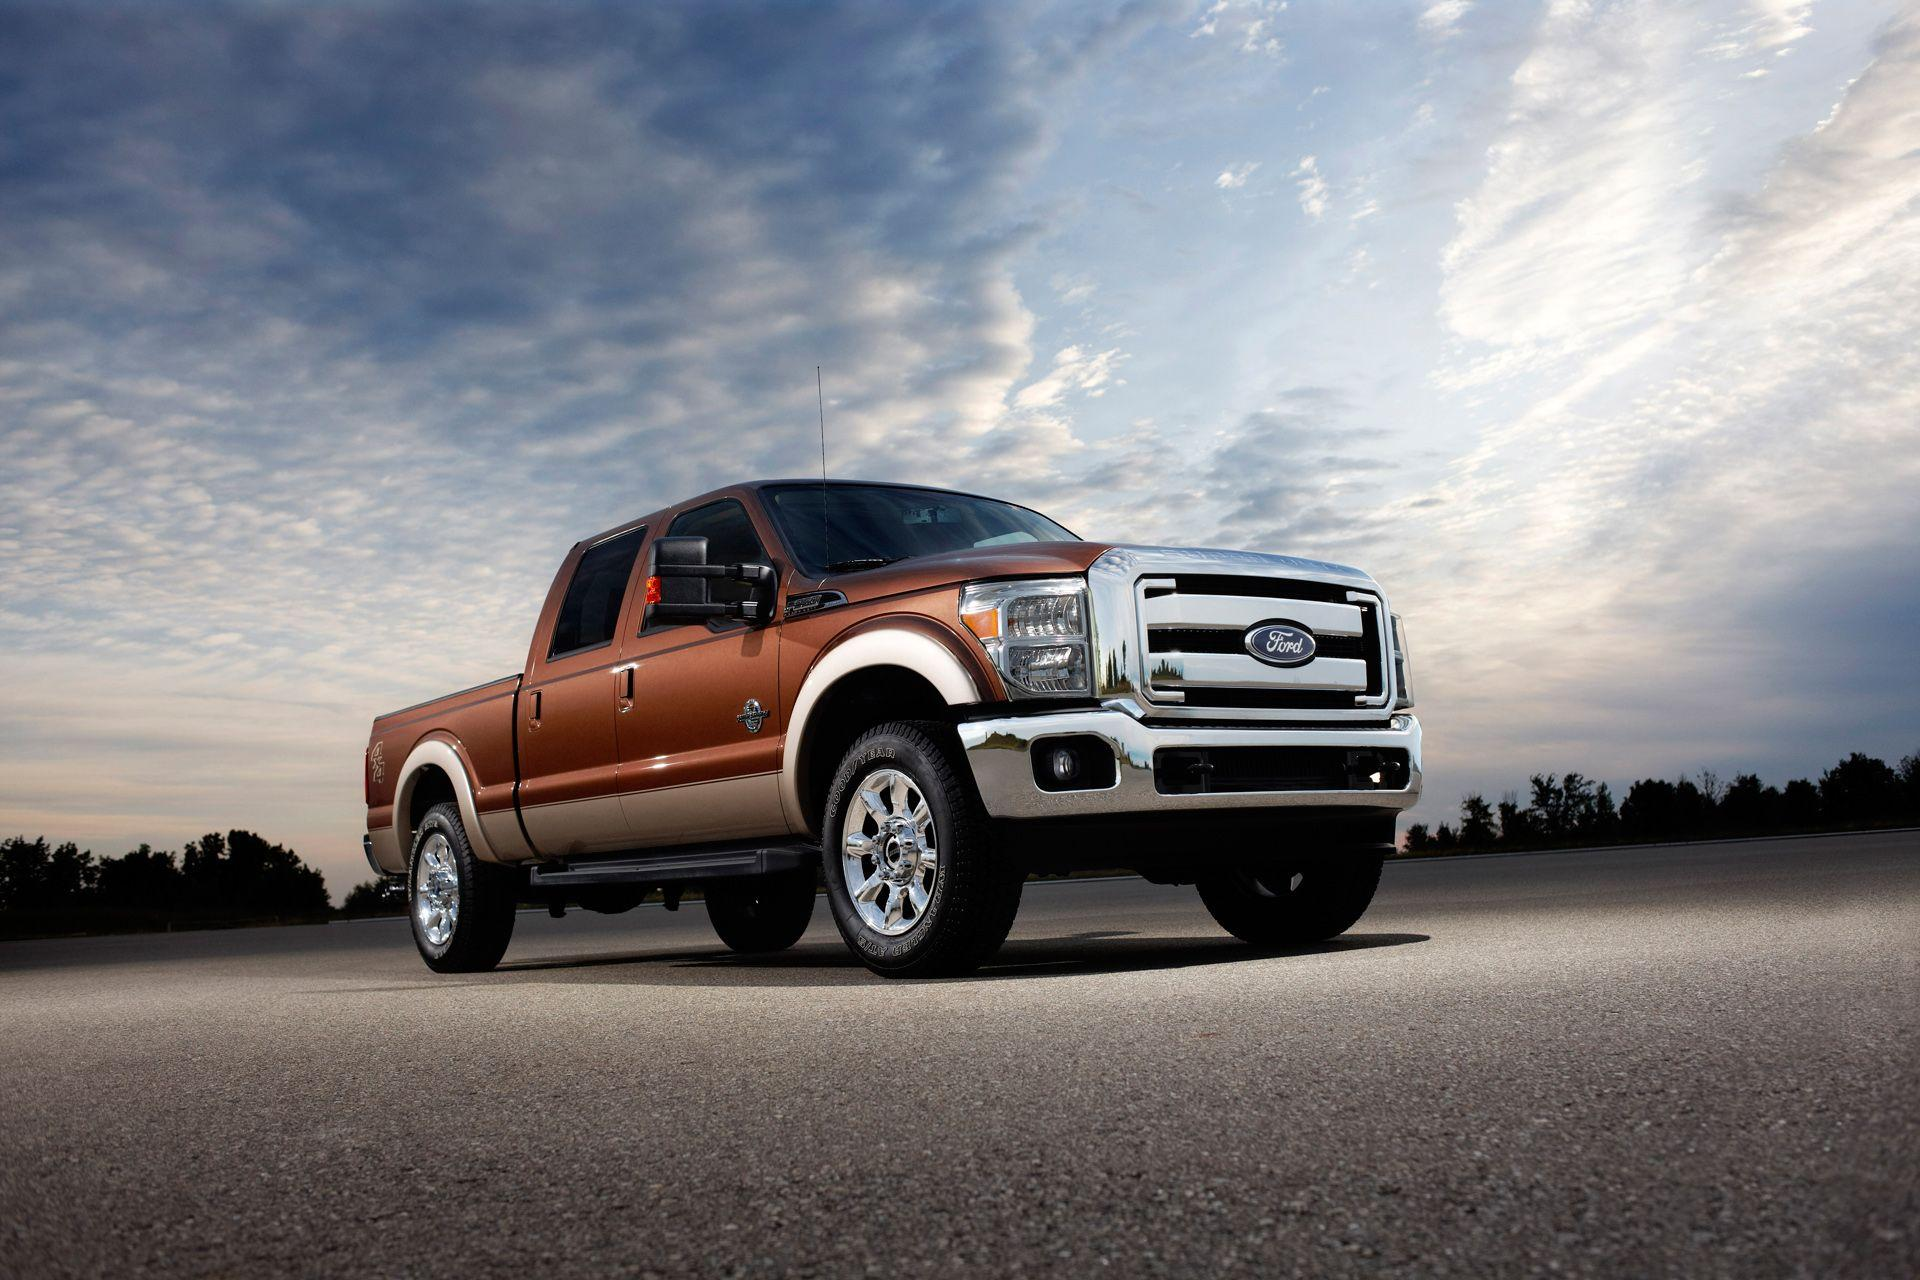 Ford F 350 Wallpapers Wallpaper Cave